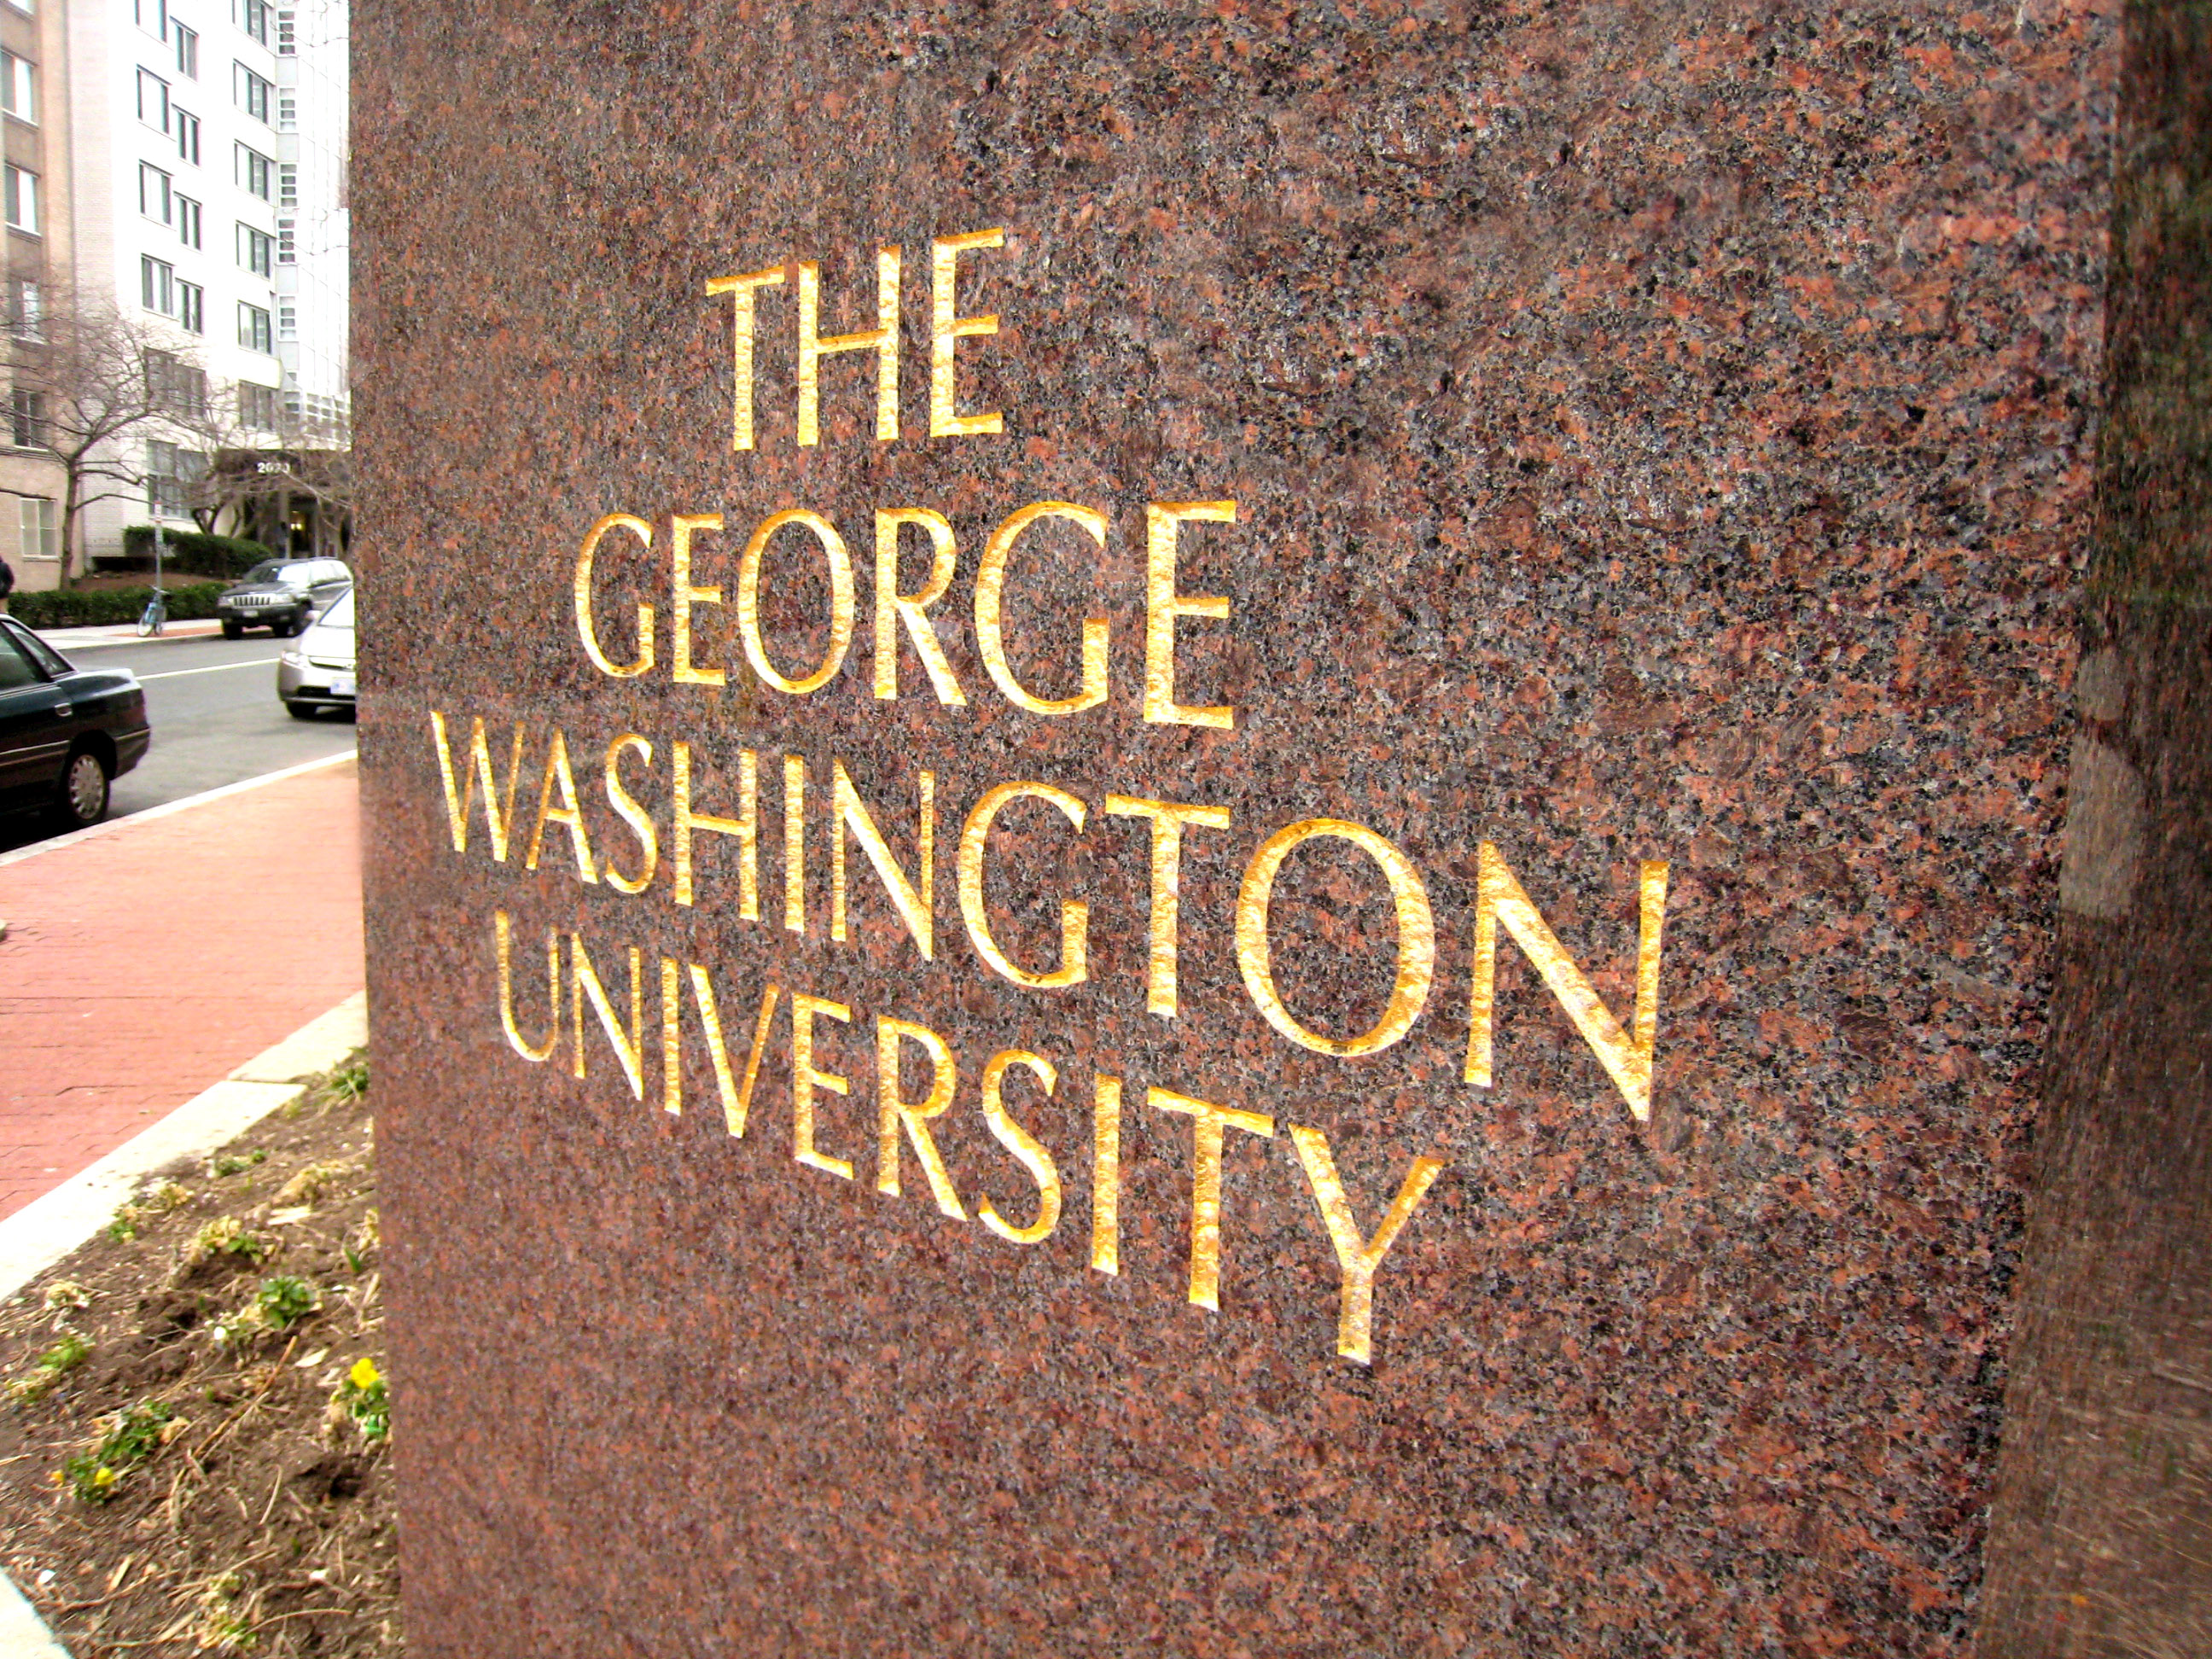 gwu supplement essay Find out admissions requirements for george washington university, including gpa requirements and sat, act, and application requirements.